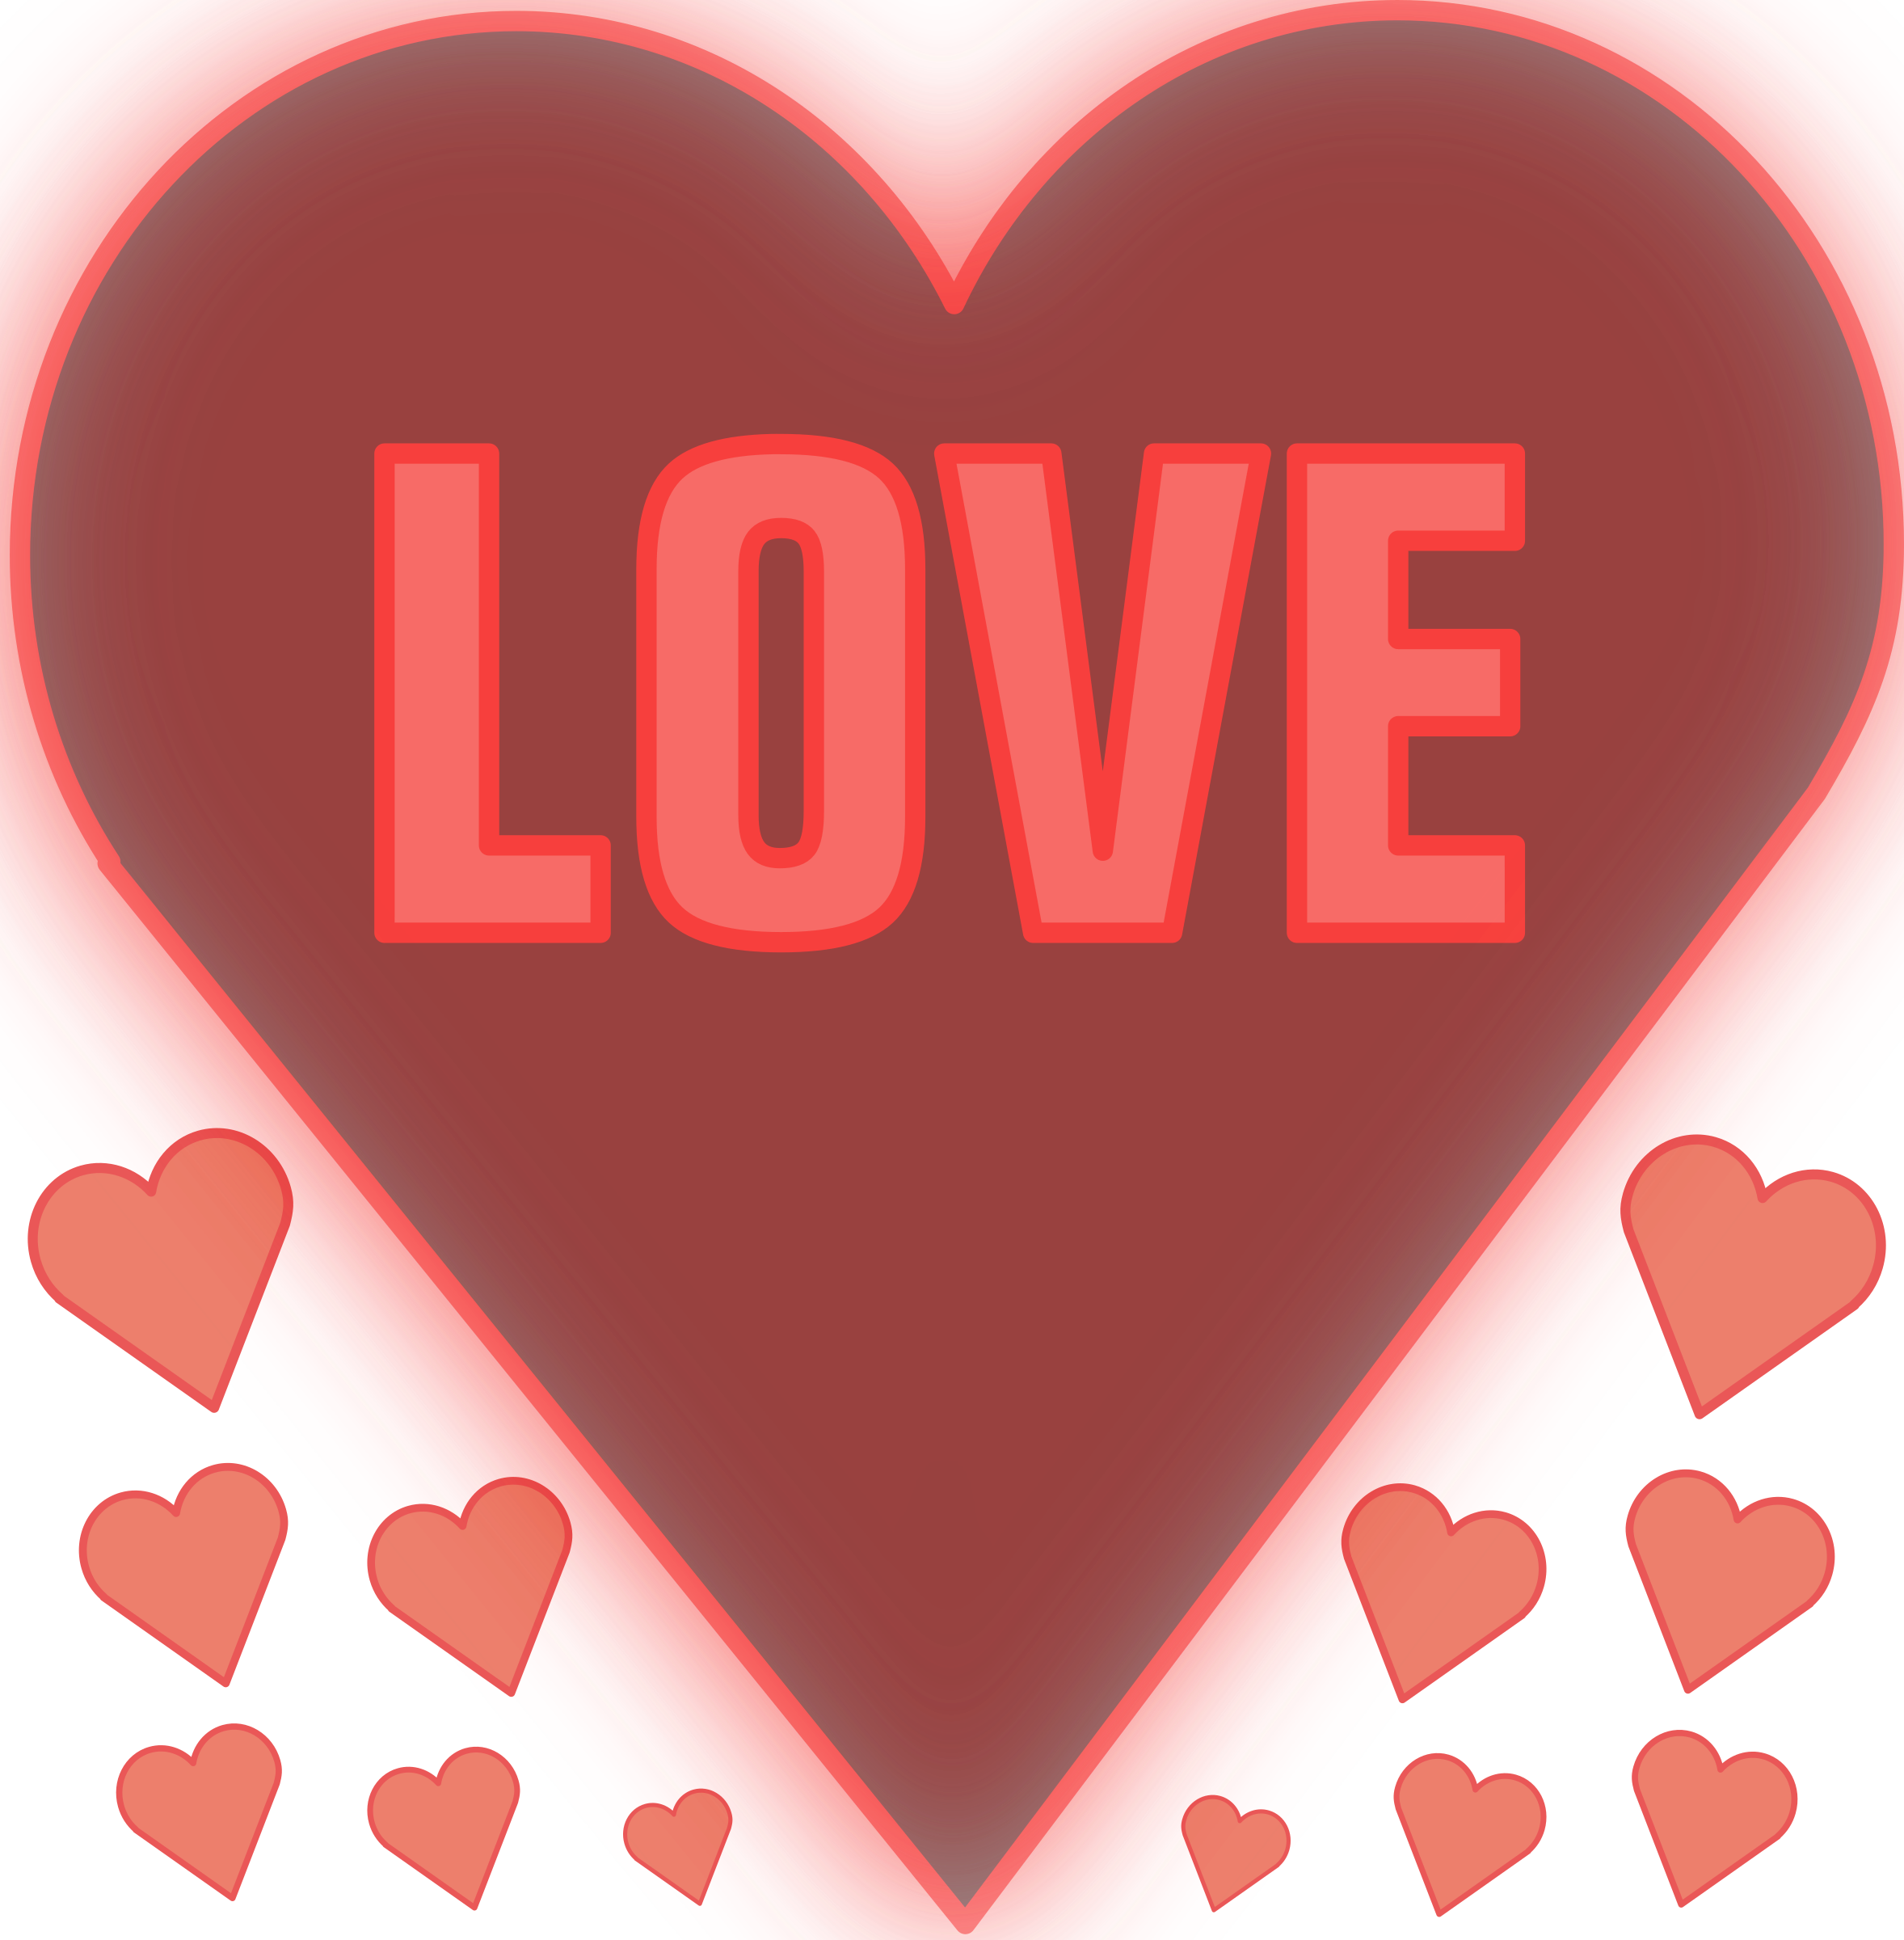 Love heart clipart clipart freeuse stock Clipart - Love in a heart clipart freeuse stock